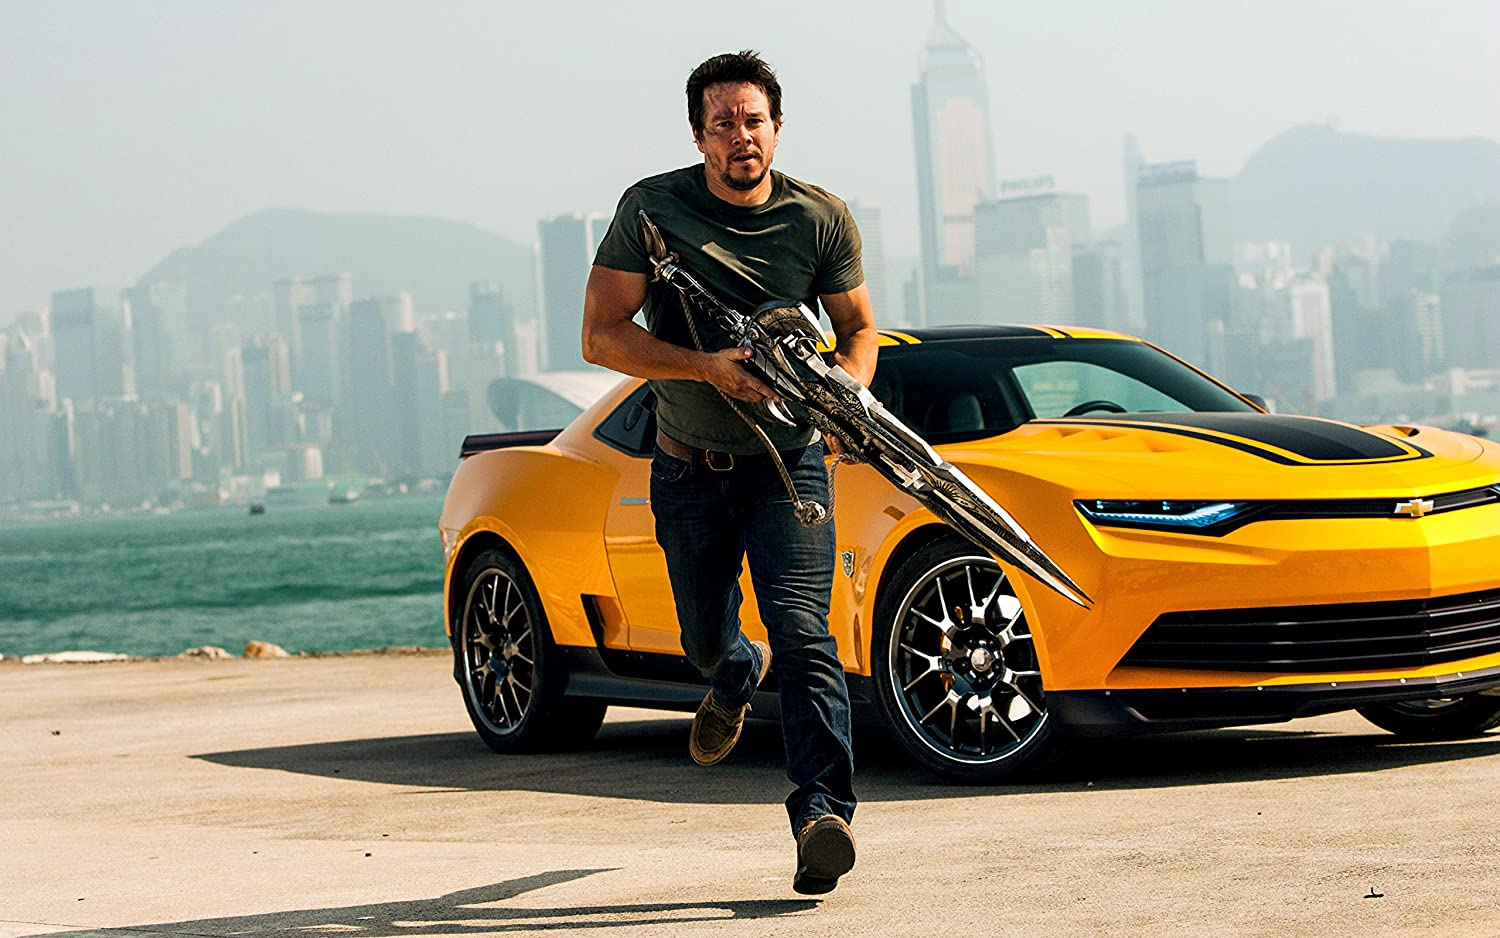 Mark Wahlberg in the movie Transformers: Age of Extinction.